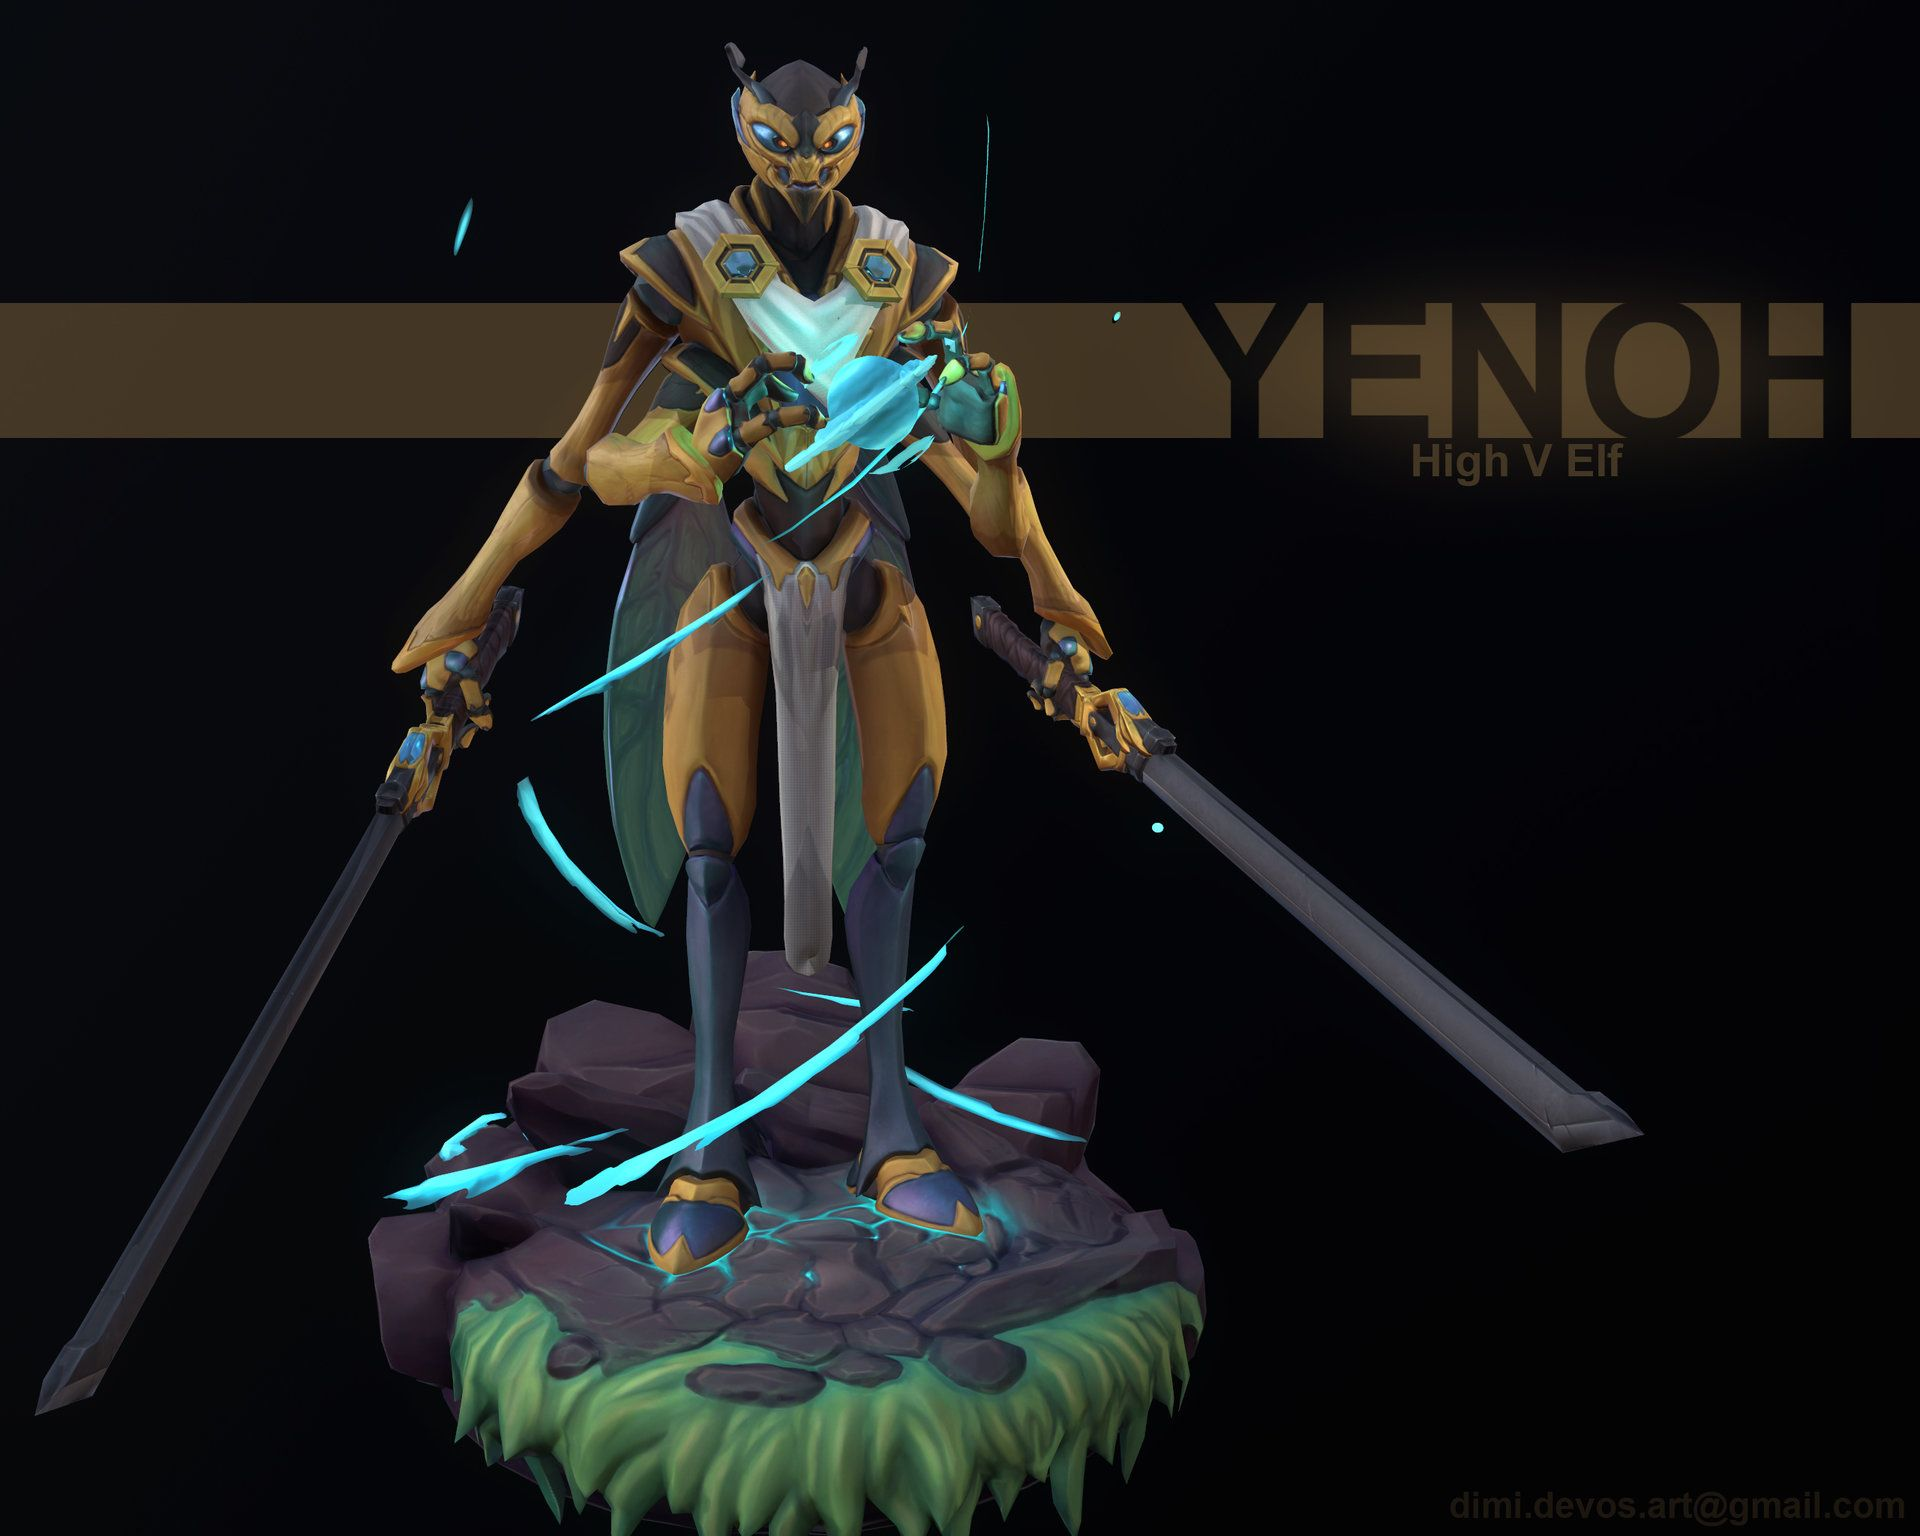 https://www.artstation.com/artwork/yenoh-the-high-v-elf